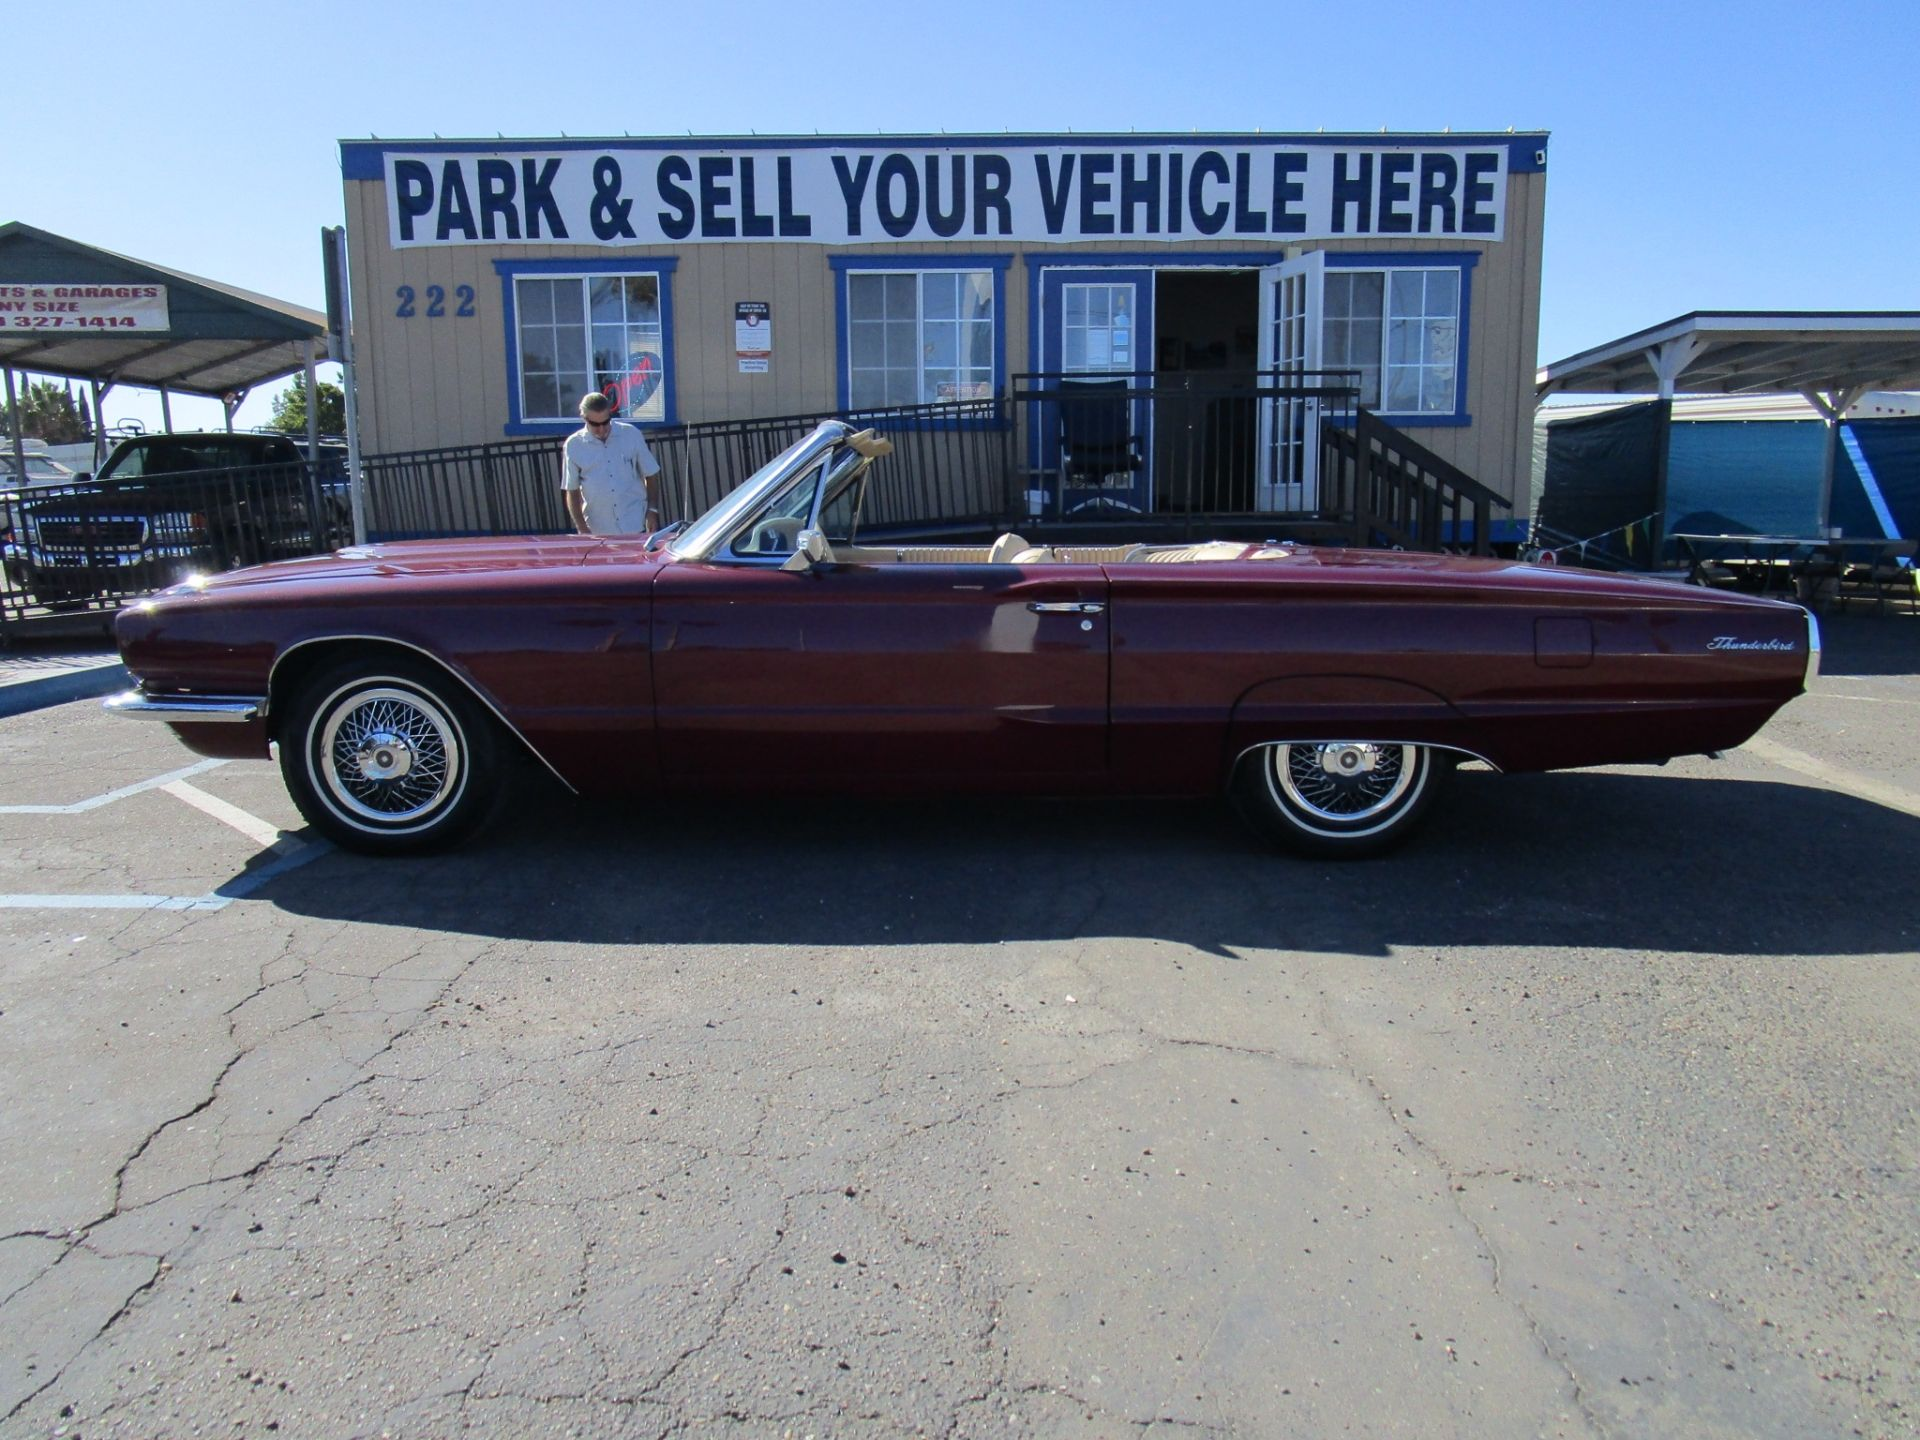 classic car for sale 1966 ford thunderbird convertible possible trade in lodi stockton ca in 2020 ford thunderbird classic cars classic car sales pinterest